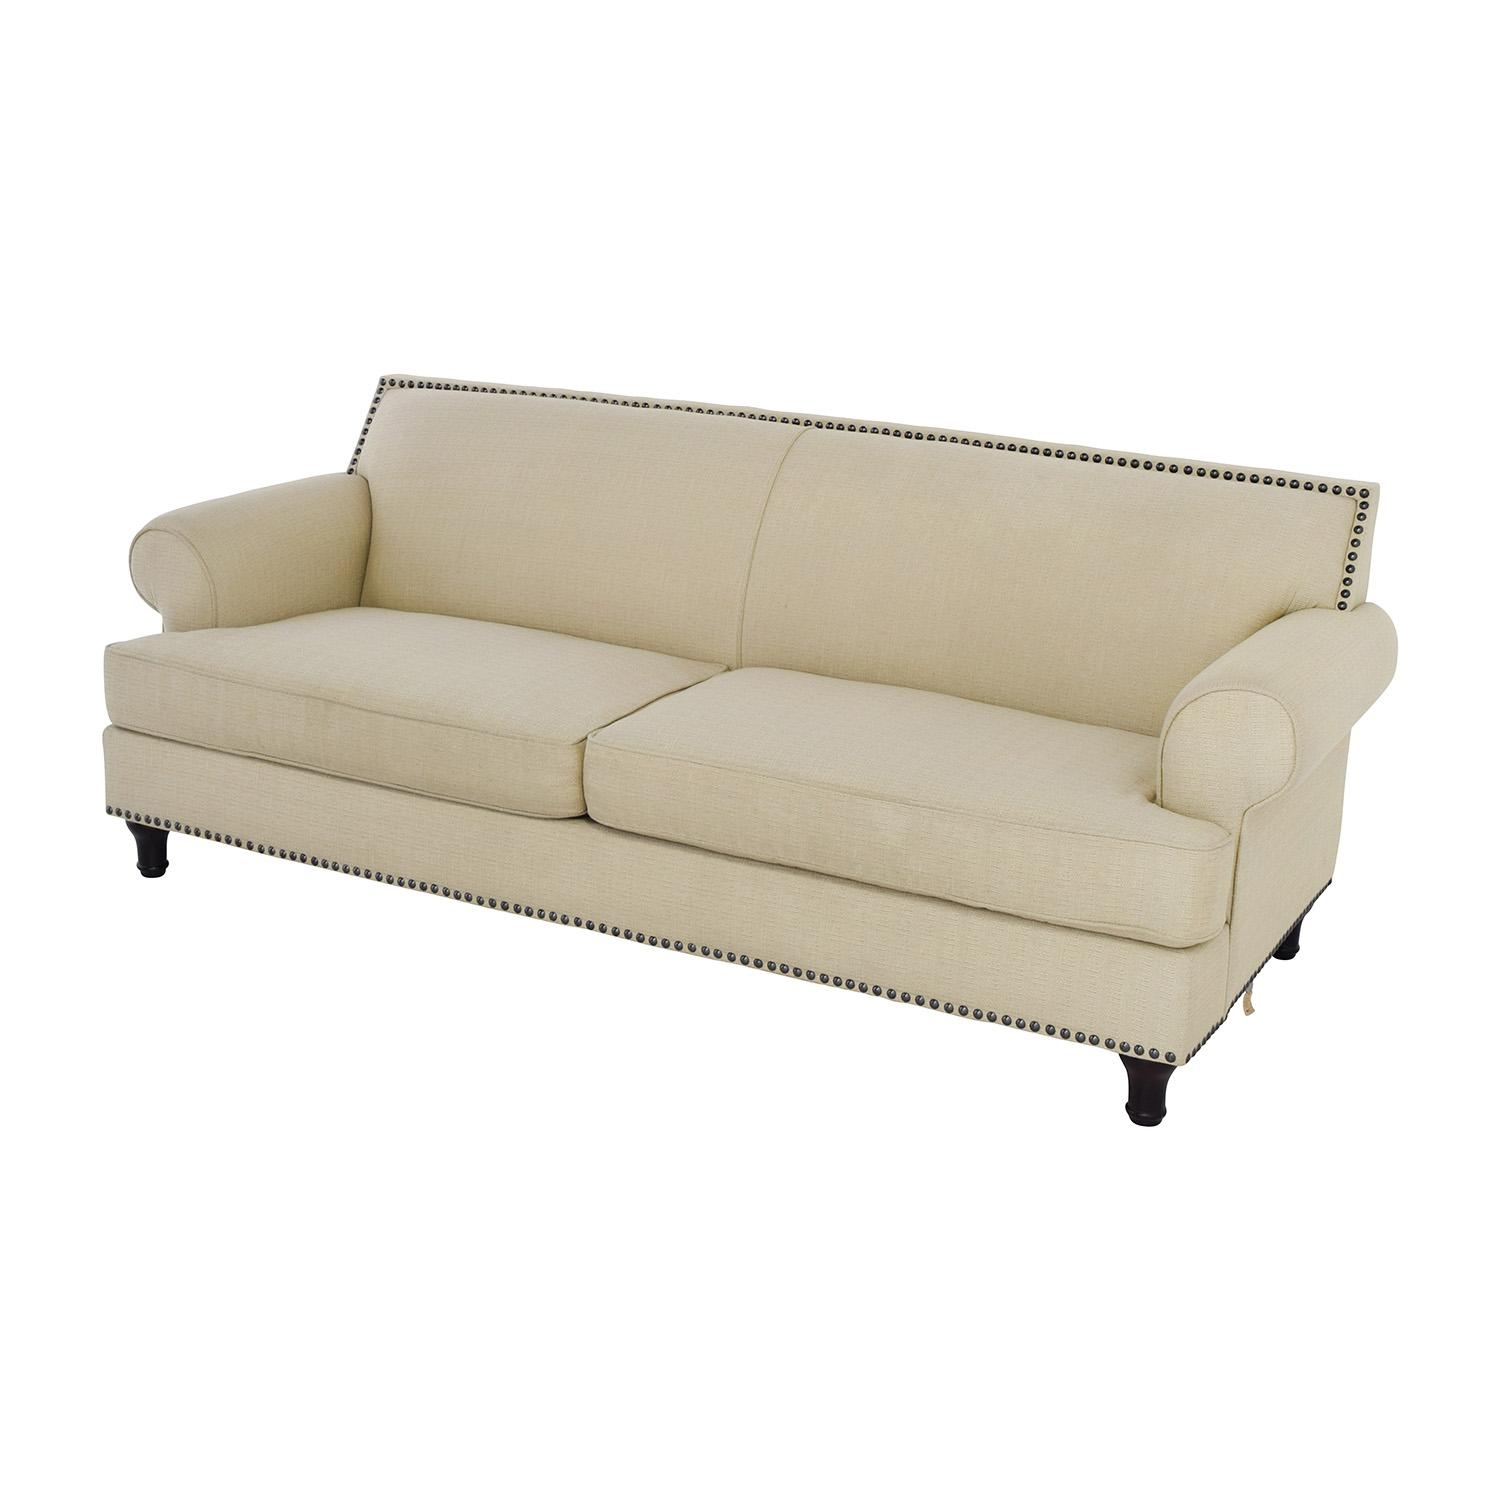 48% Off – Pier 1 Pier 1 Carmen Tan Couch With Studs / Sofas For Pier One Carmen Sofas (View 6 of 20)